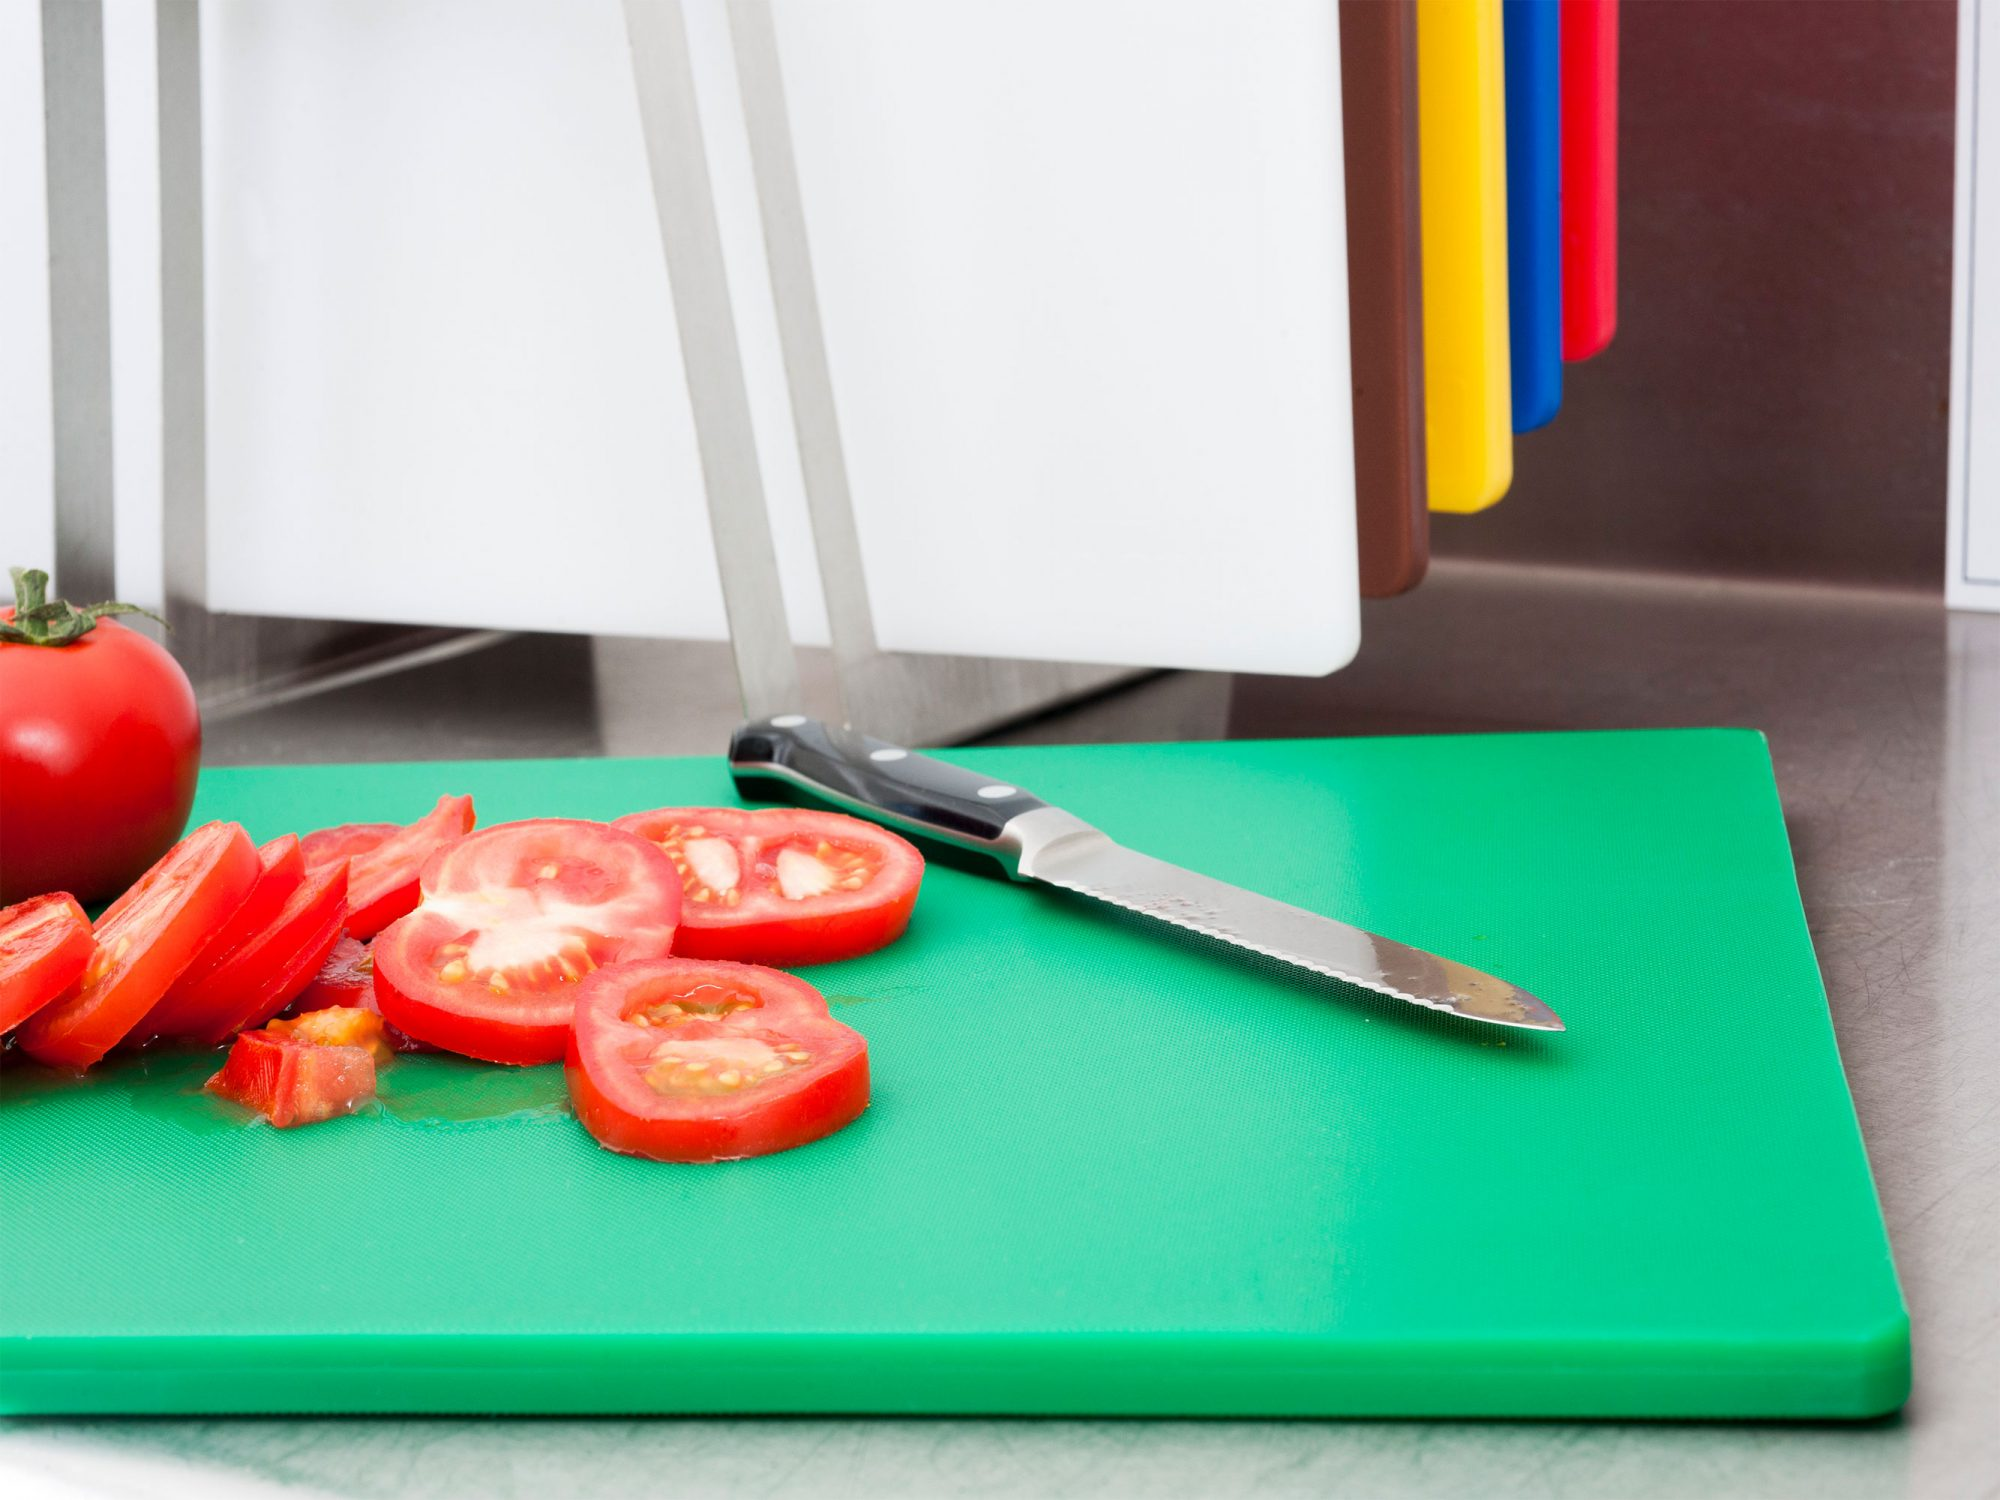 Plastic Cutting Boards with Tomato